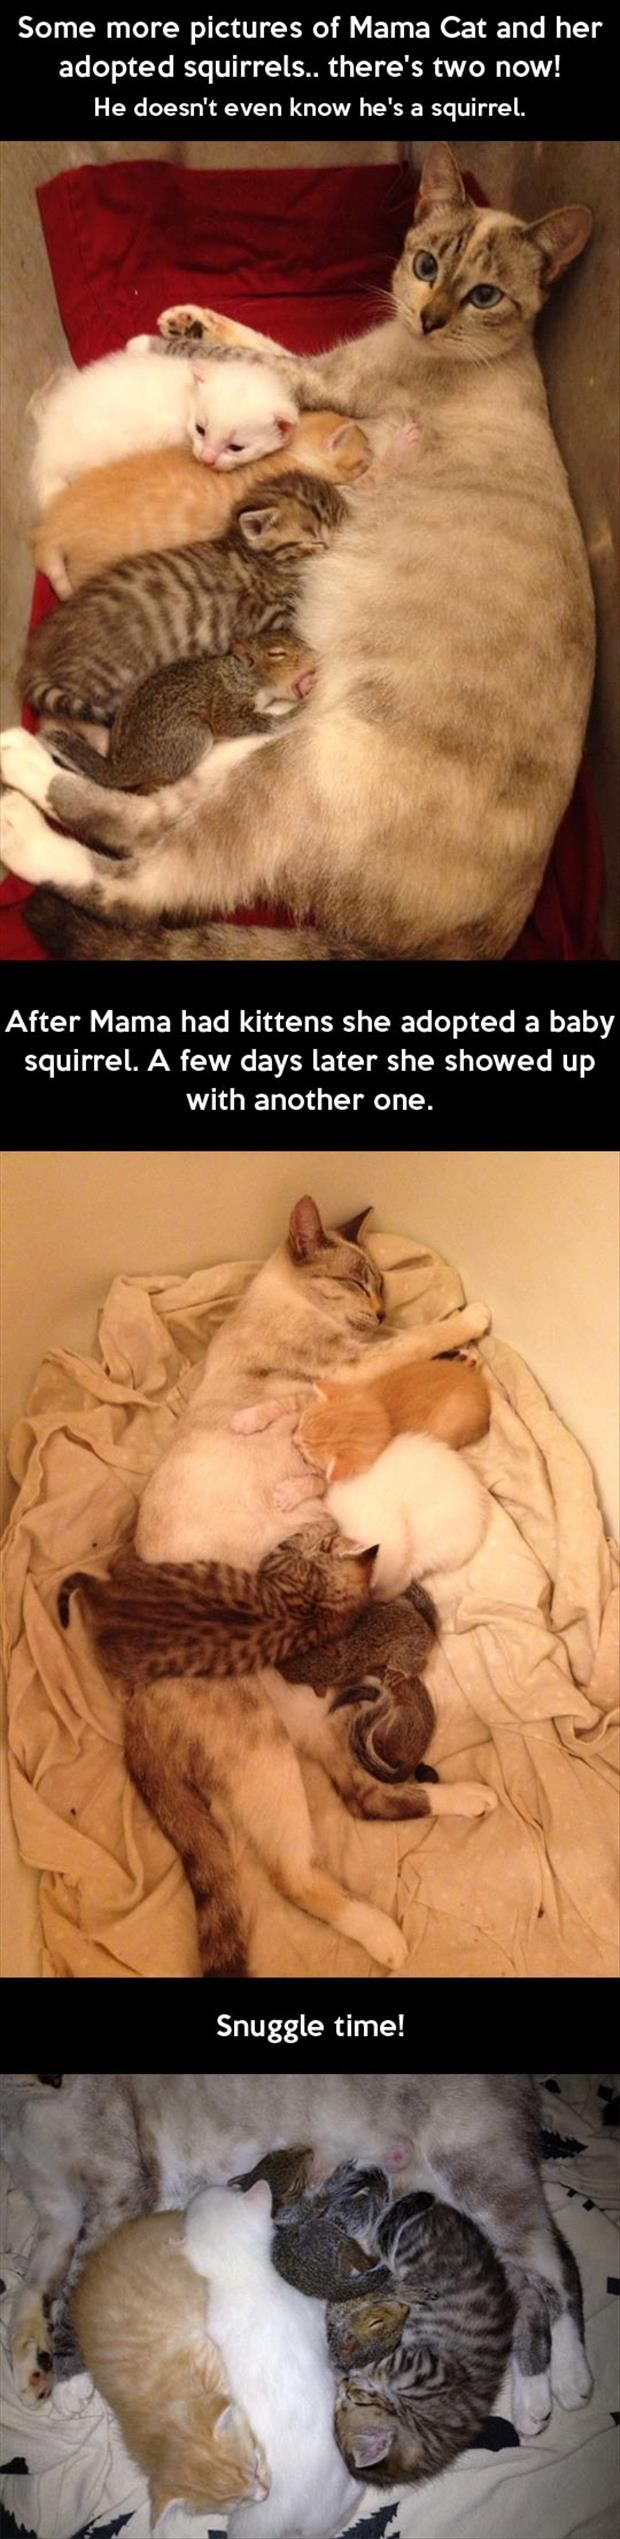 Mama kitty, baby kitties, baby squirrels.  Just a big, happy family.: